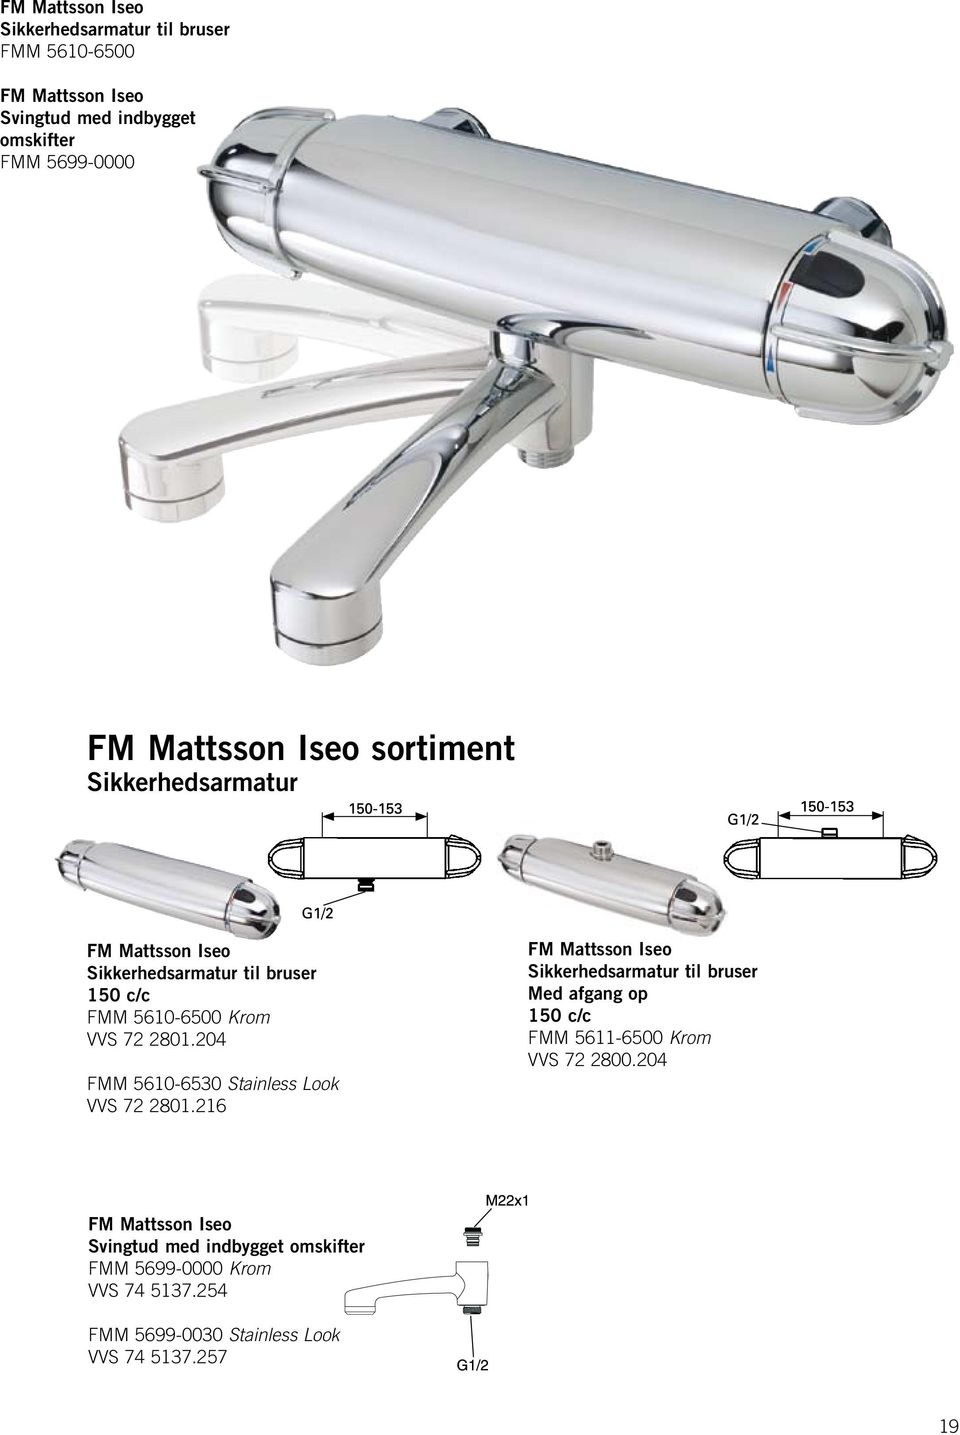 204 FMM 5610-6530 Stainless Look VVS 72 2801.